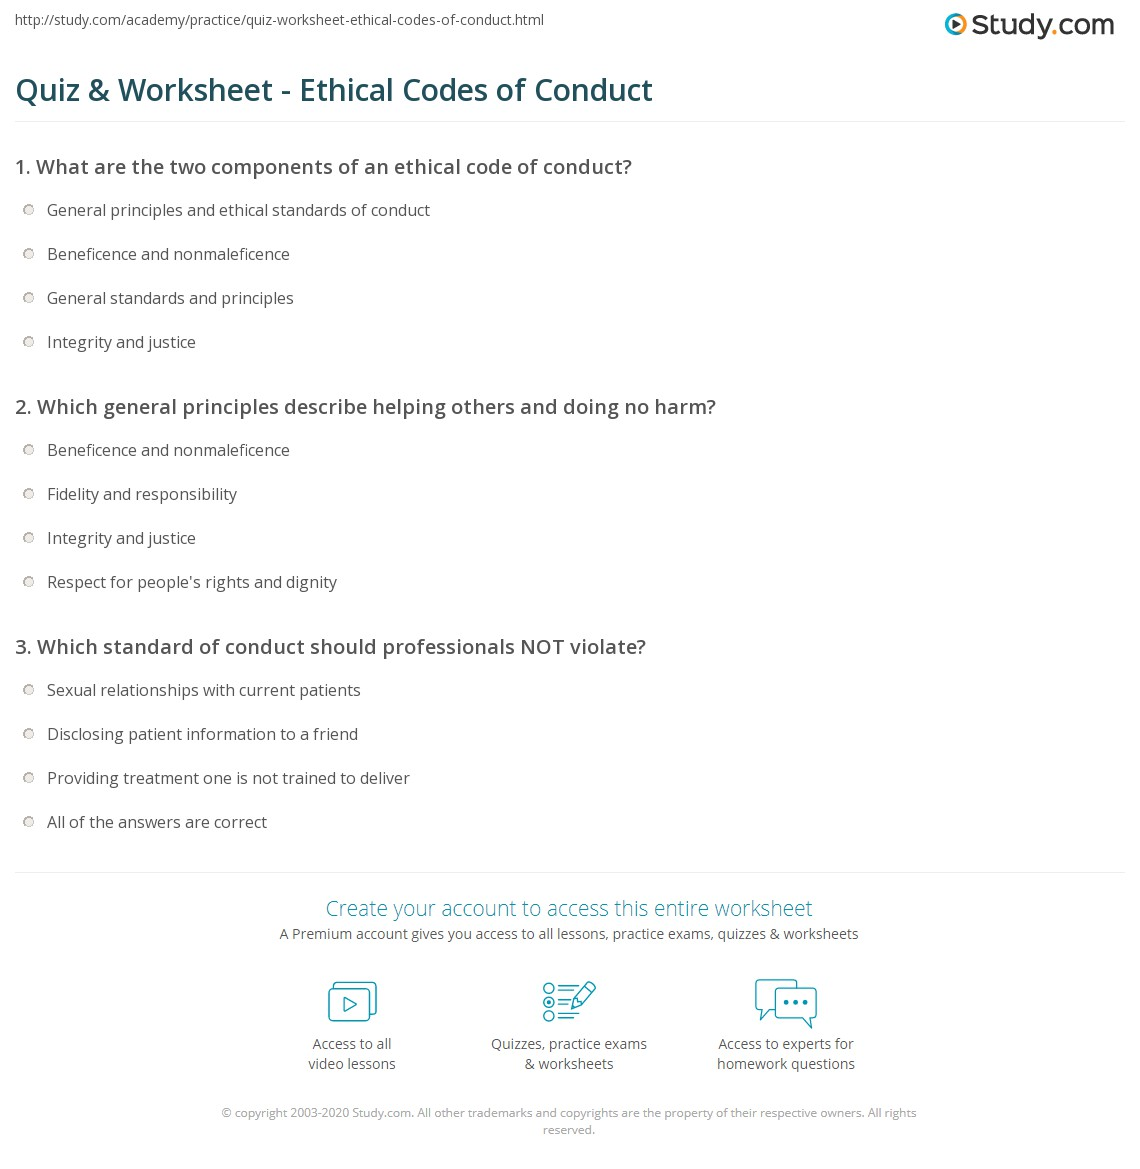 Print Ethical Code Of Conduct: Definition U0026 Example Worksheet